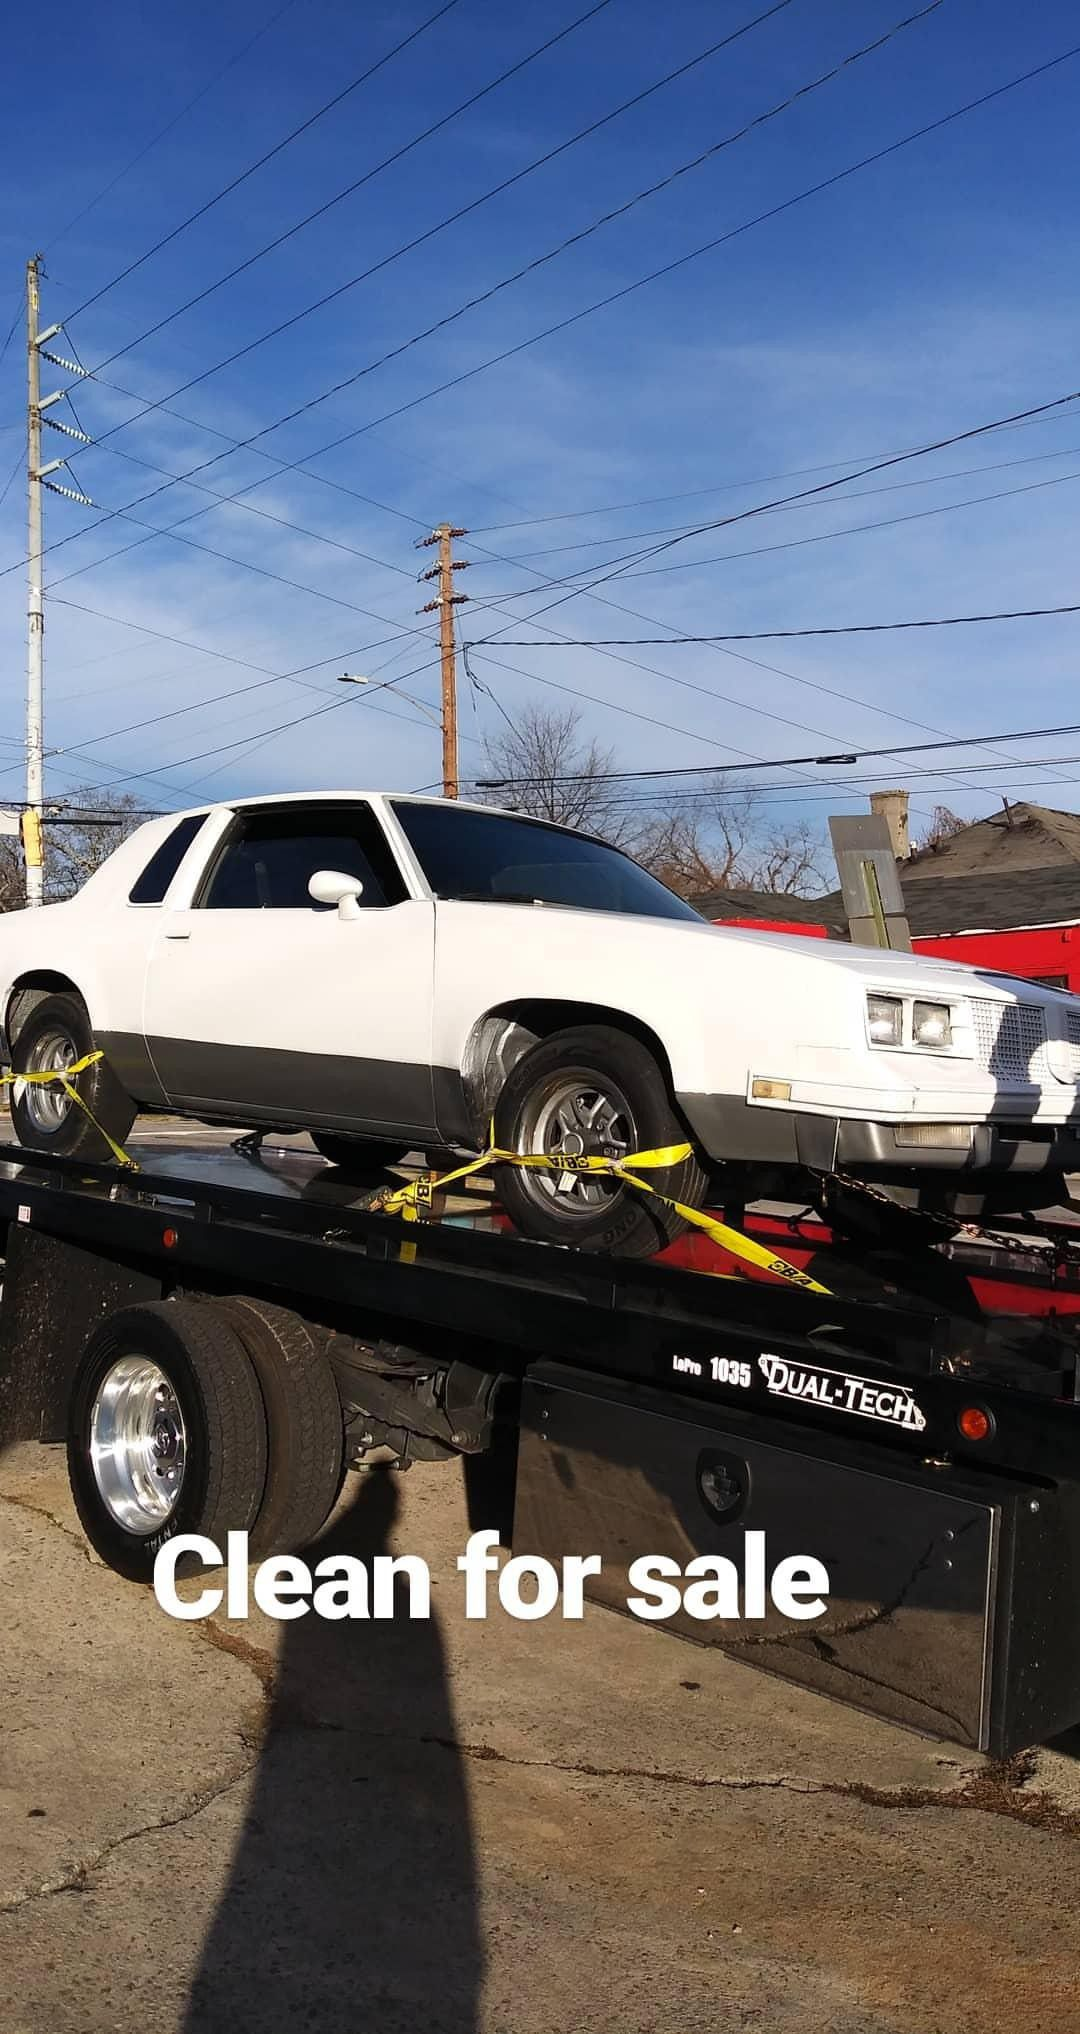 Chevy Cutlass 350 motor and transmission